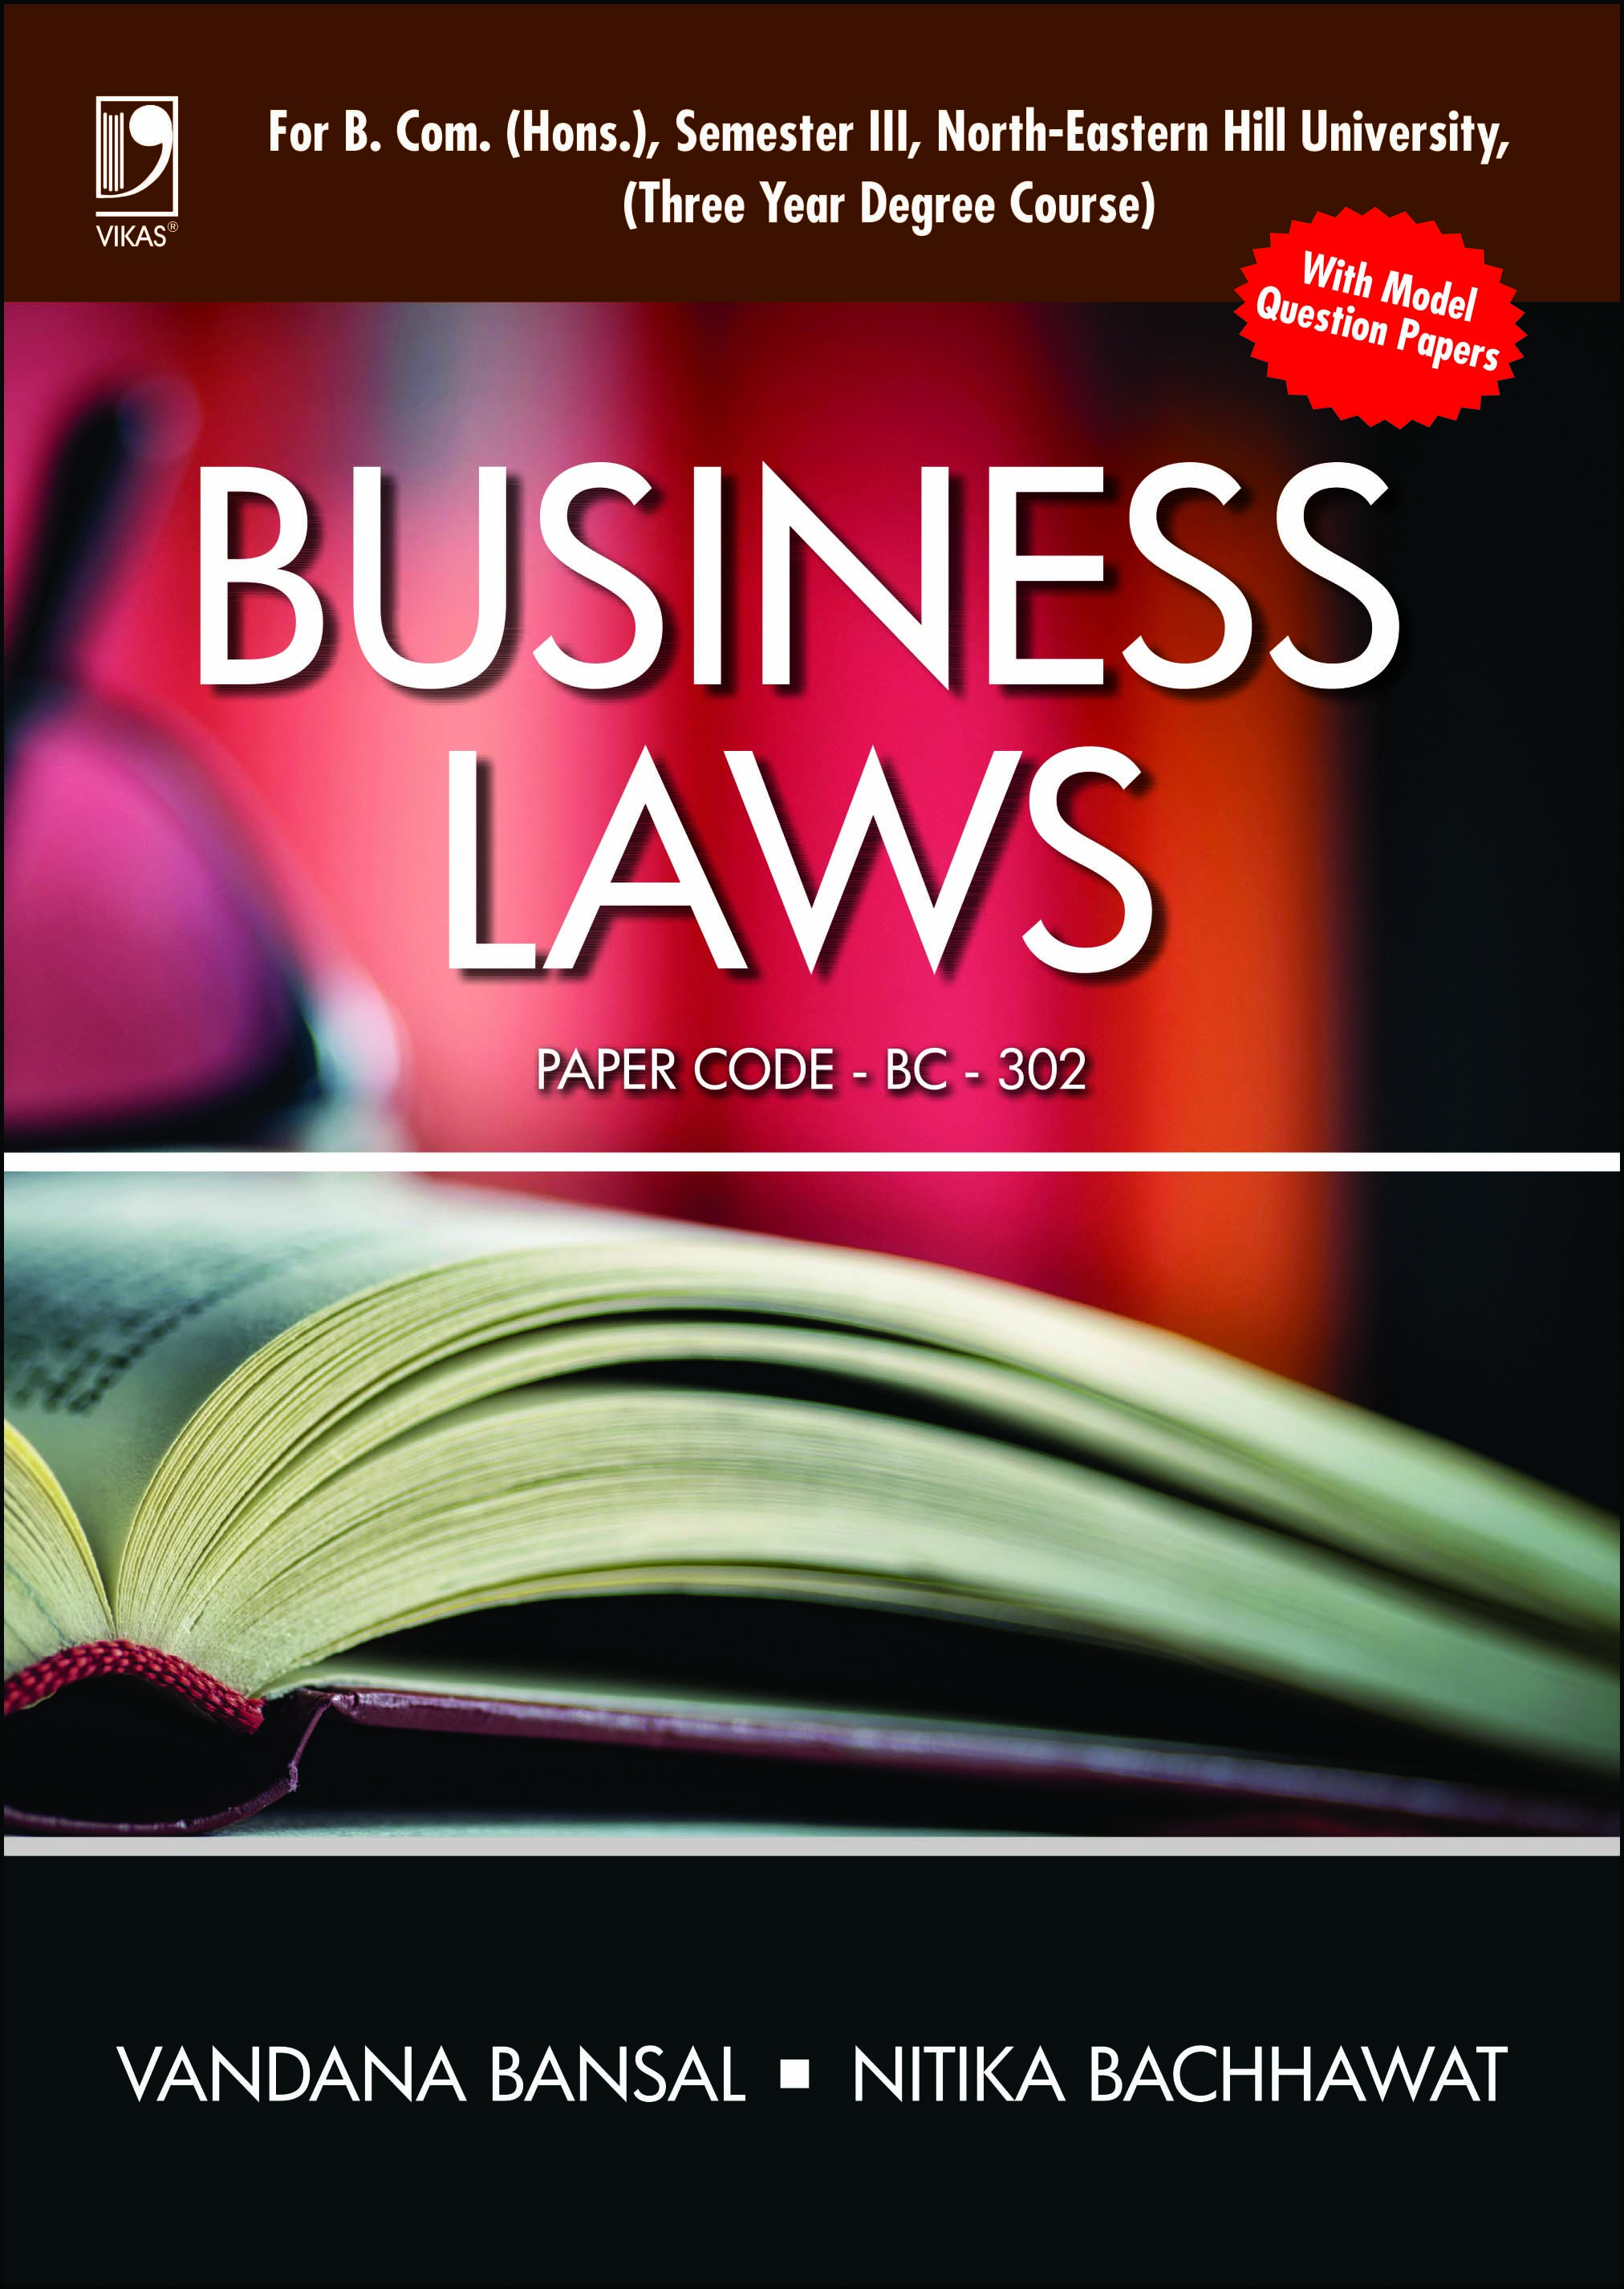 BUSINESS LAWS: (FOR NORTH-EASTERN HILL UNIVERSITY) by  Vandana Bansal